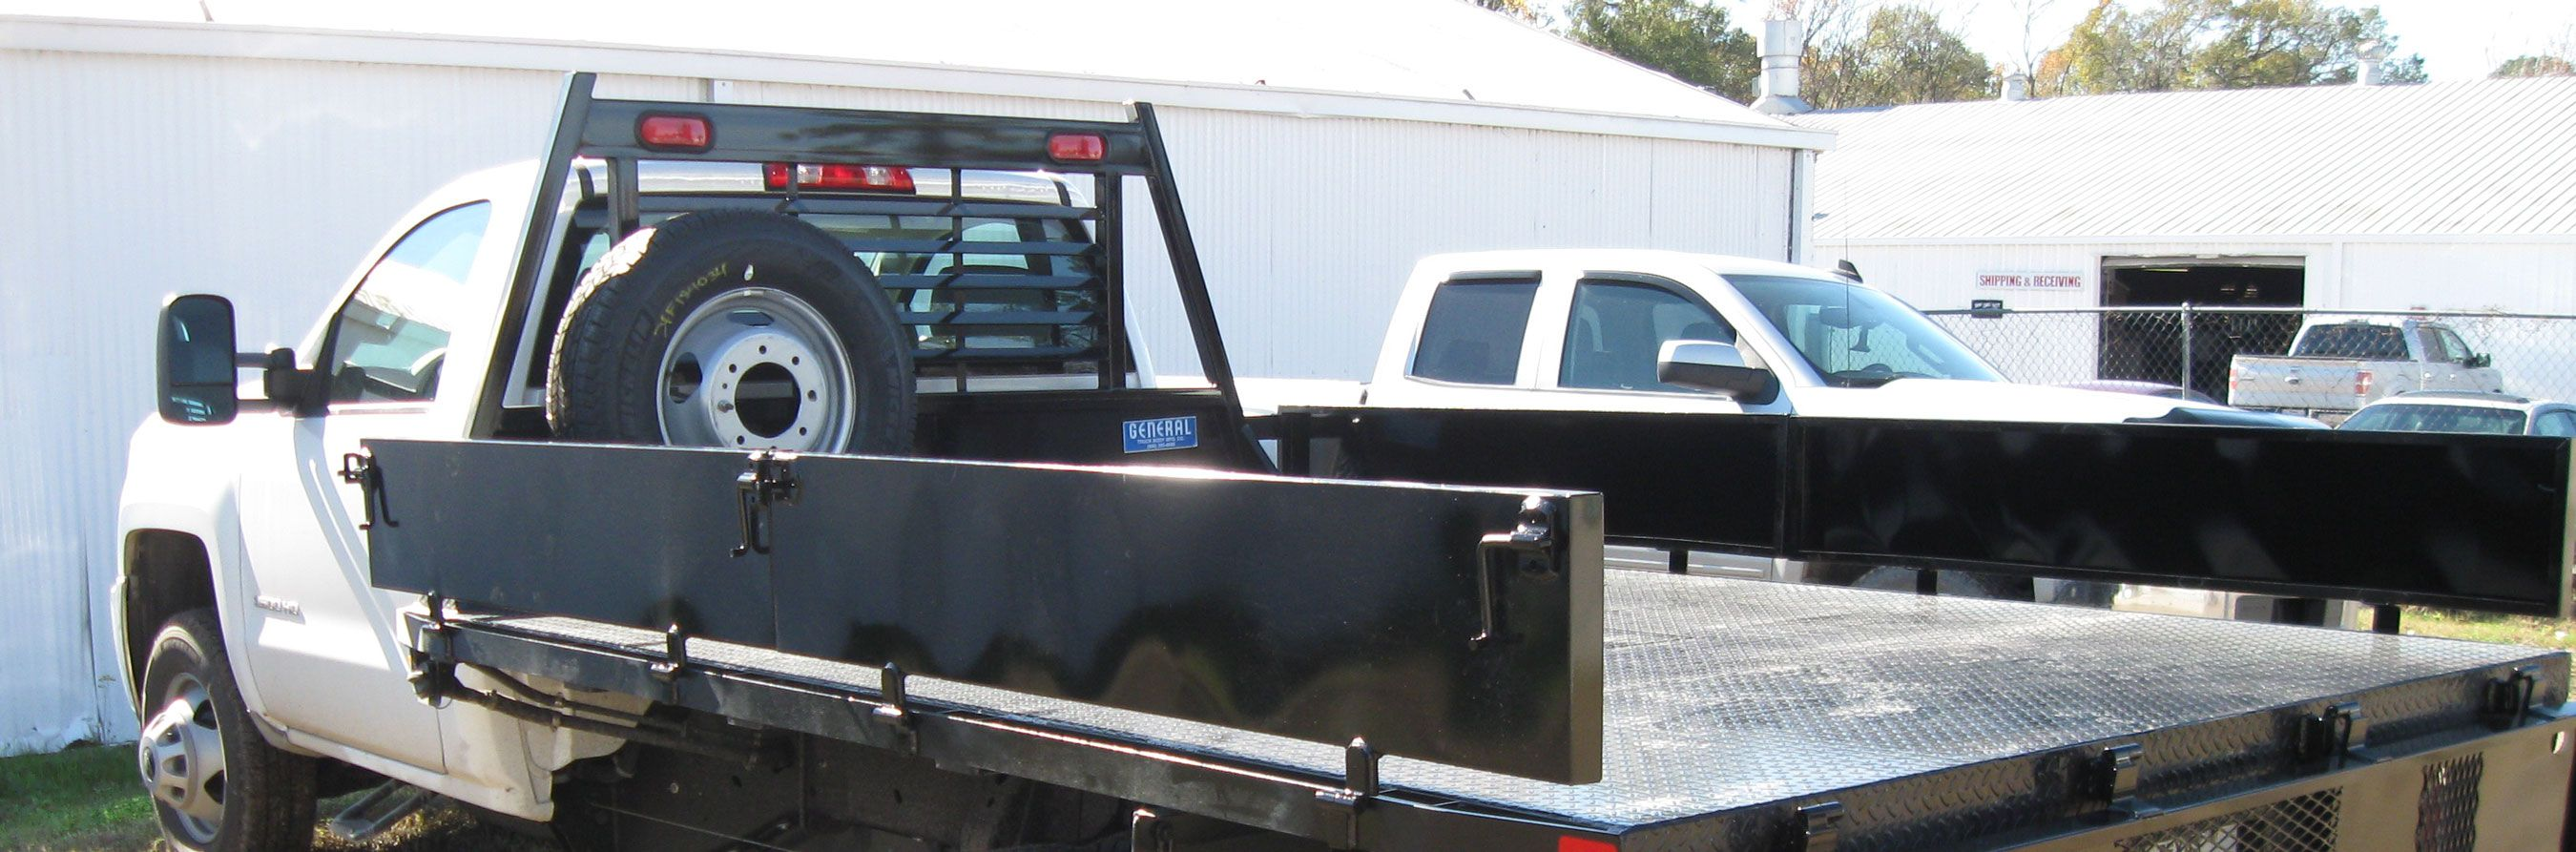 Commercial Truck Accessories in Houston, Texas